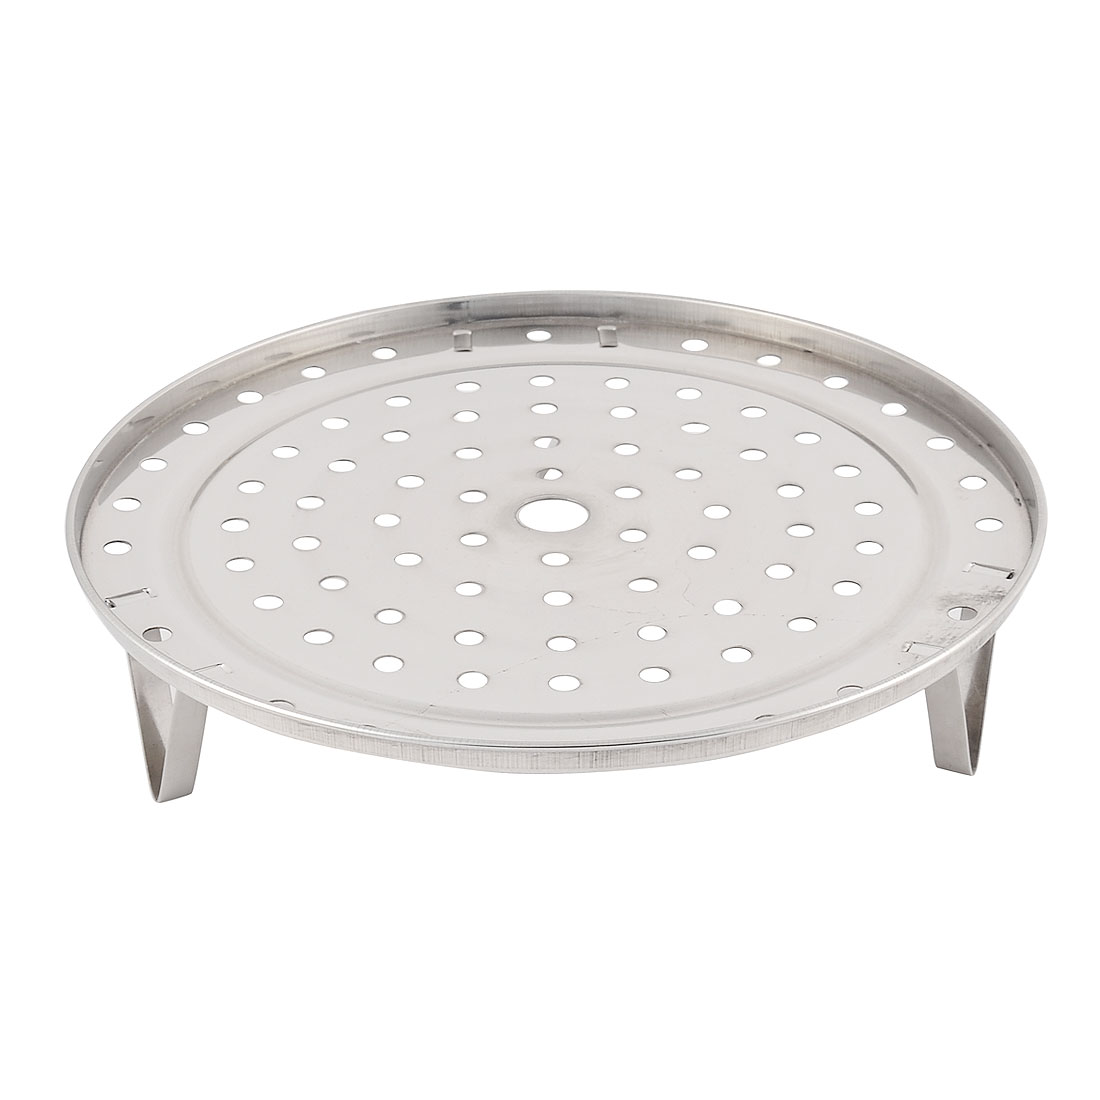 Household Stainlss Steel Steaming Rack Tray Stand Silver Tone 24cm Diameter